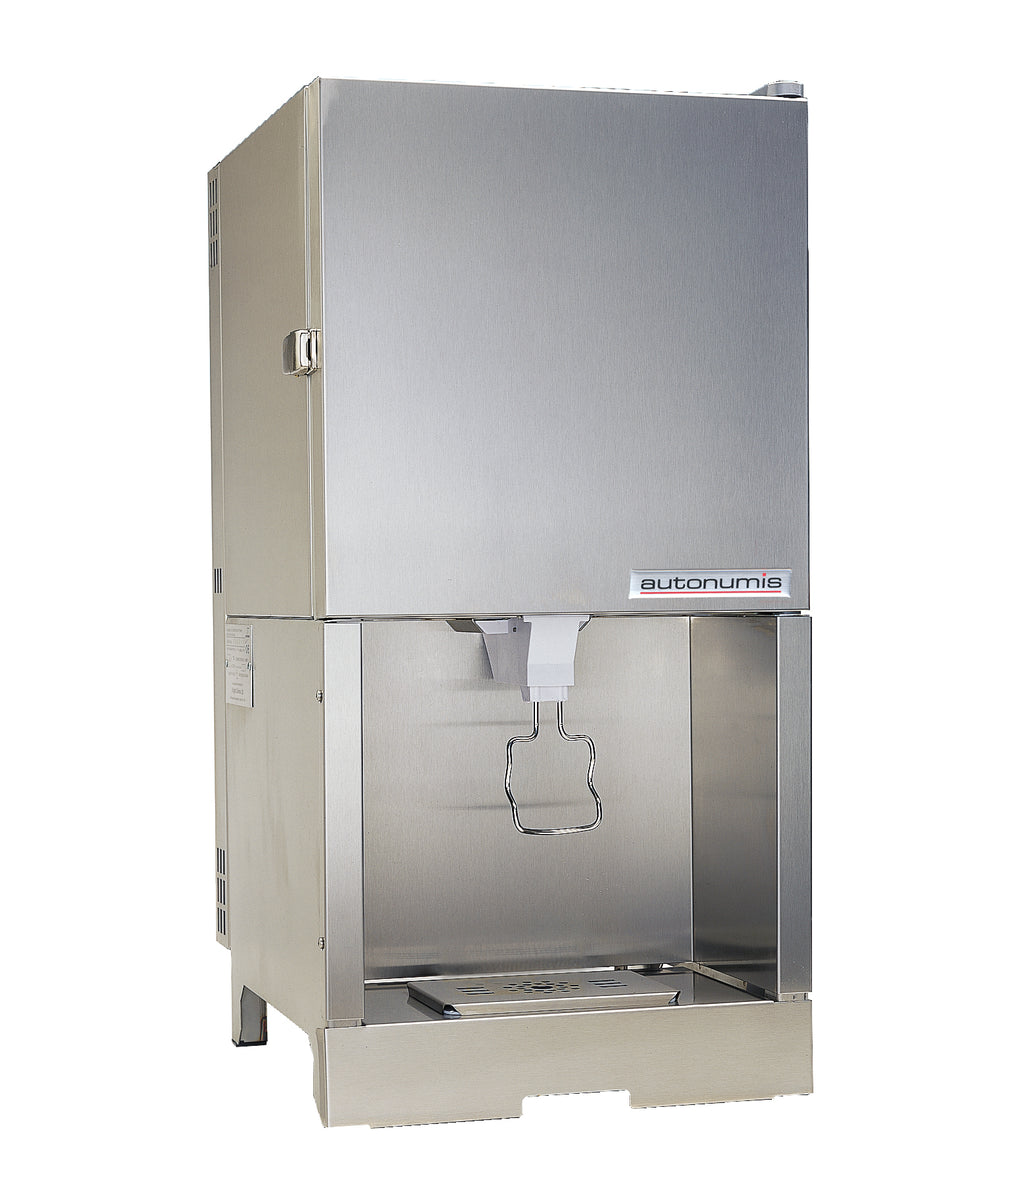 Autonumis 5 Gallon Milk Dispenser Stainless Steel : MKC00001